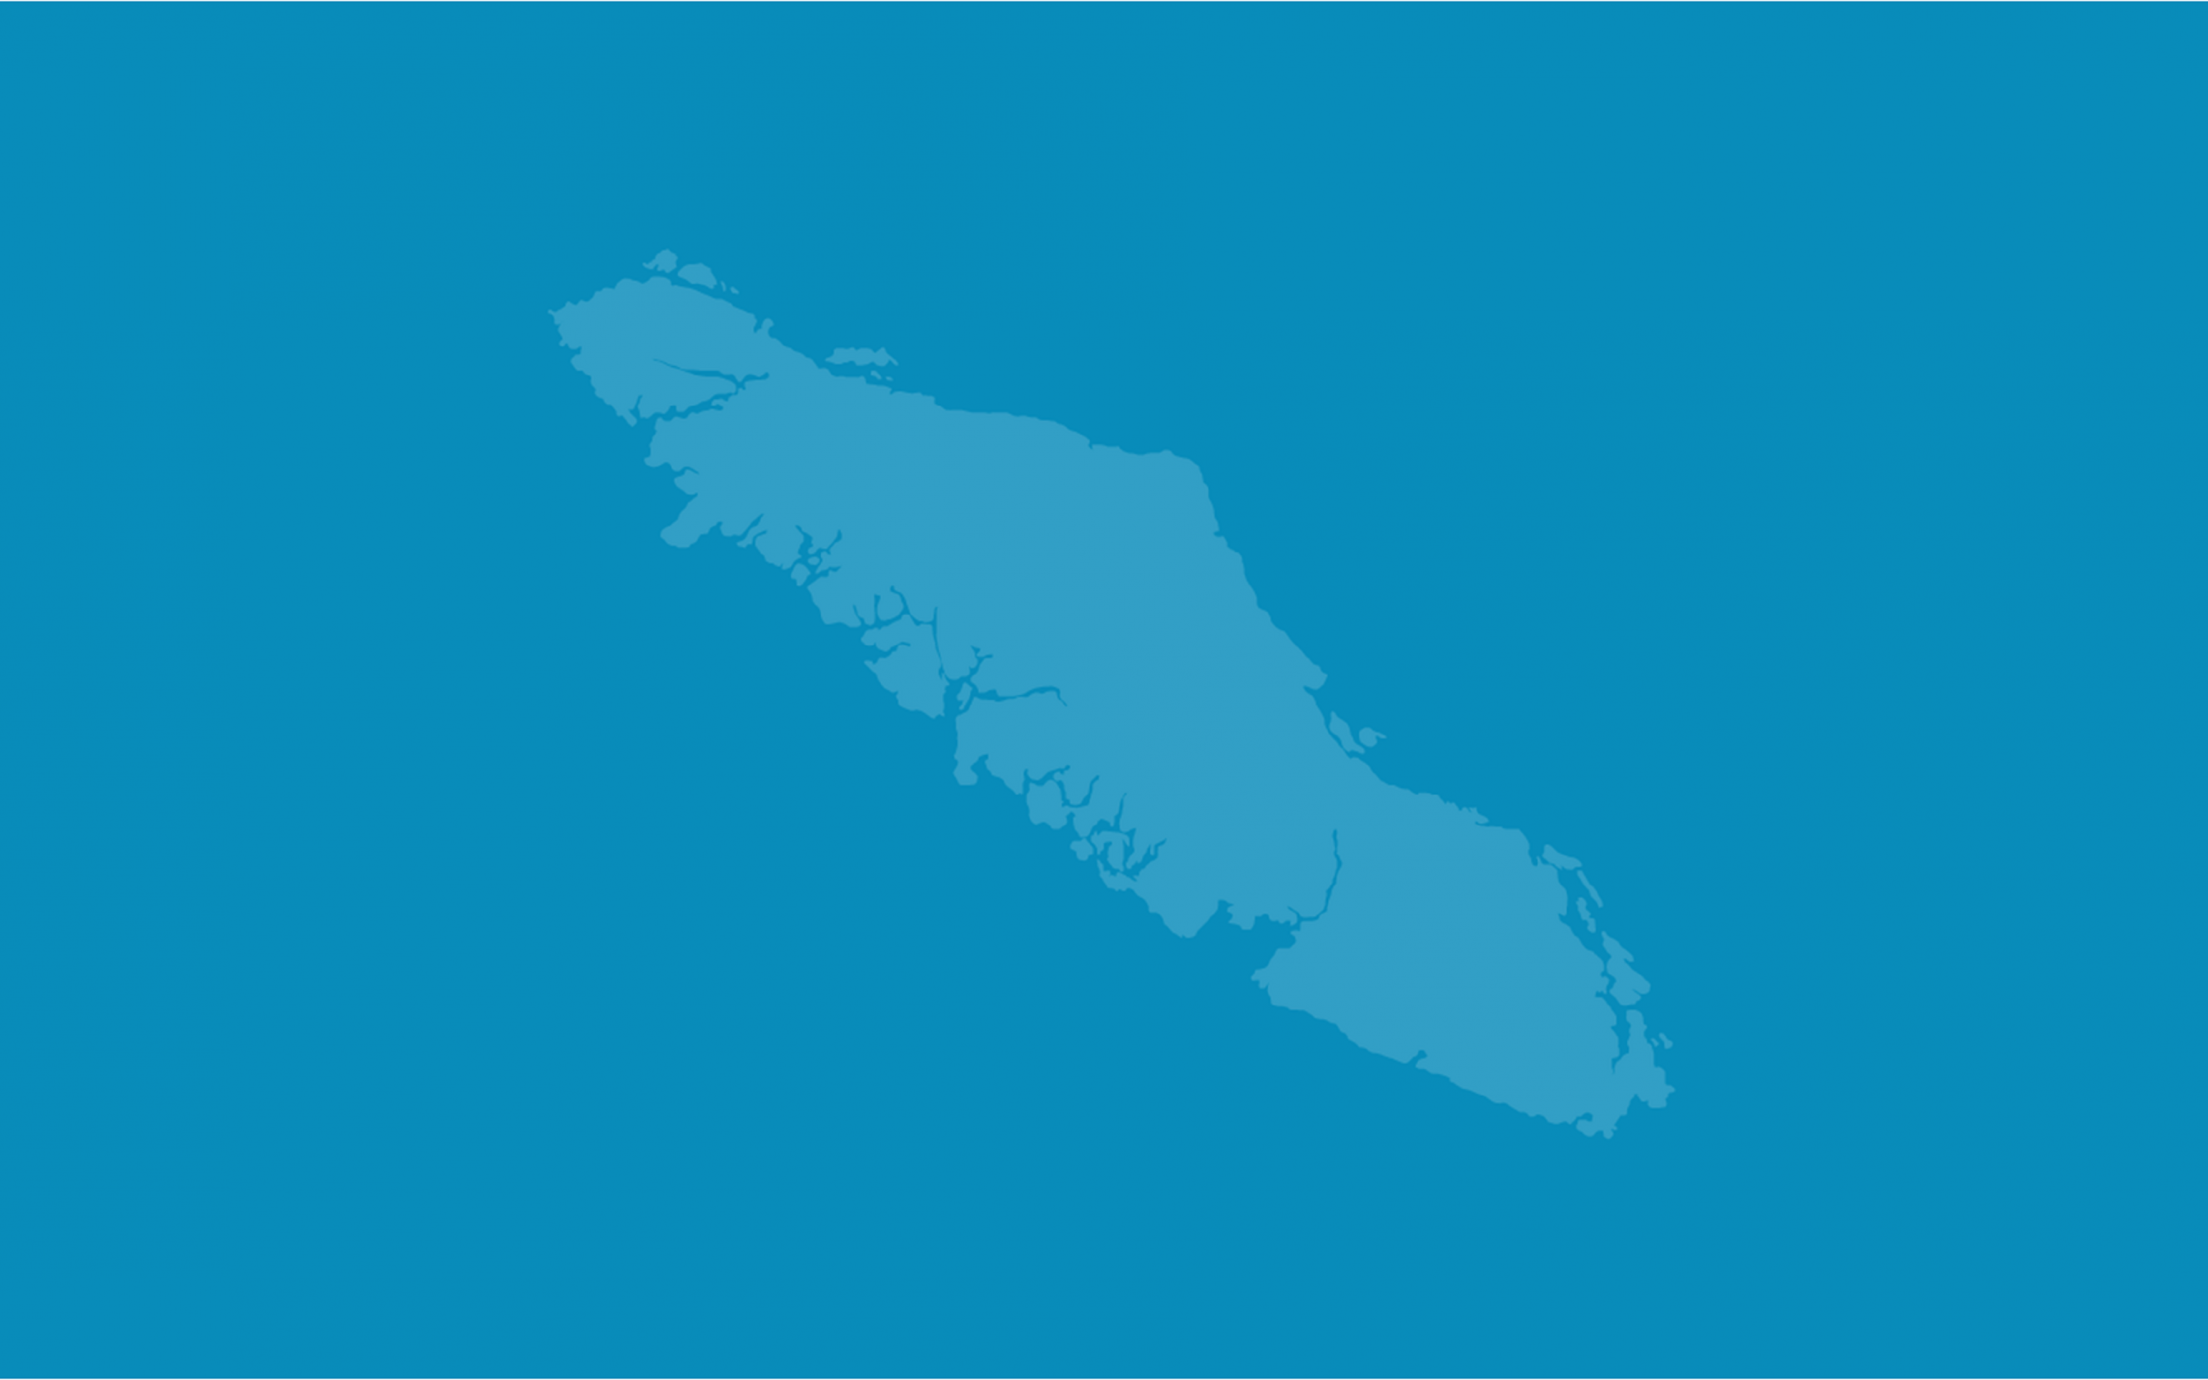 An image of Vancouver Island on a blue background